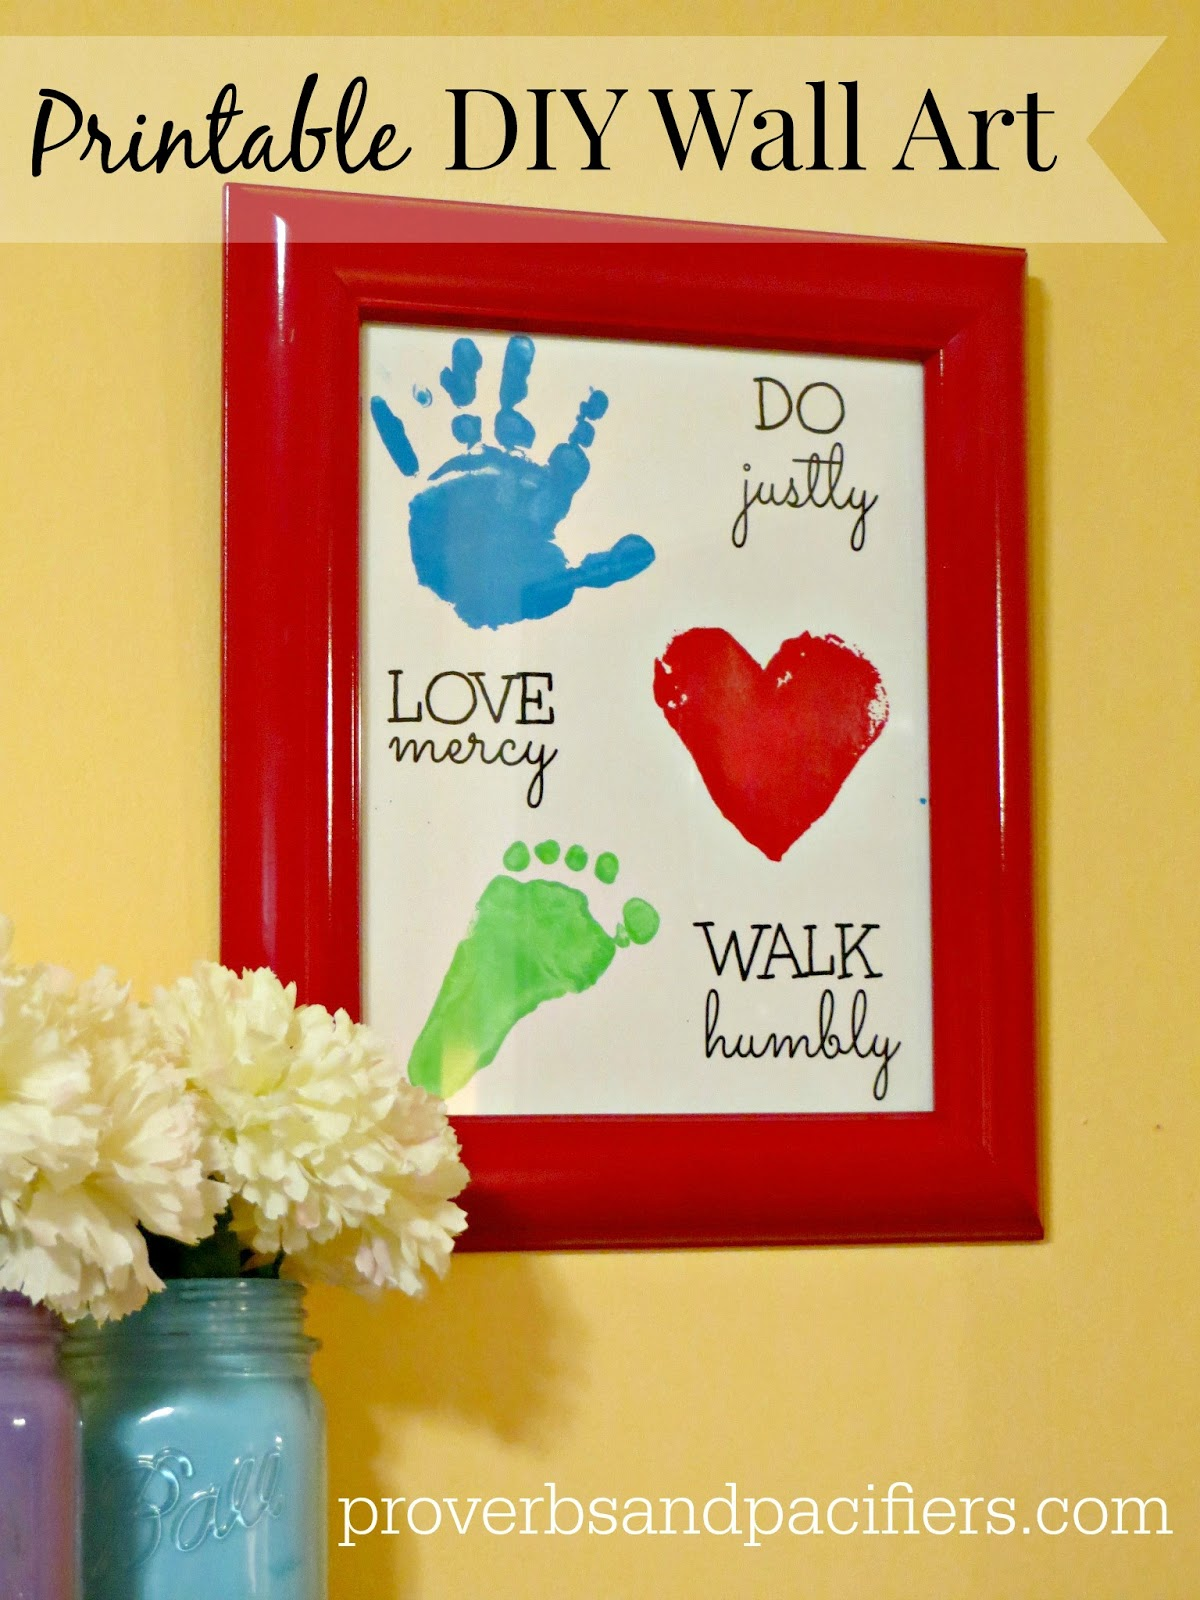 Proverbs and Pacifiers: {Printable} Micah 6:8 Wall Art Craft for Kids